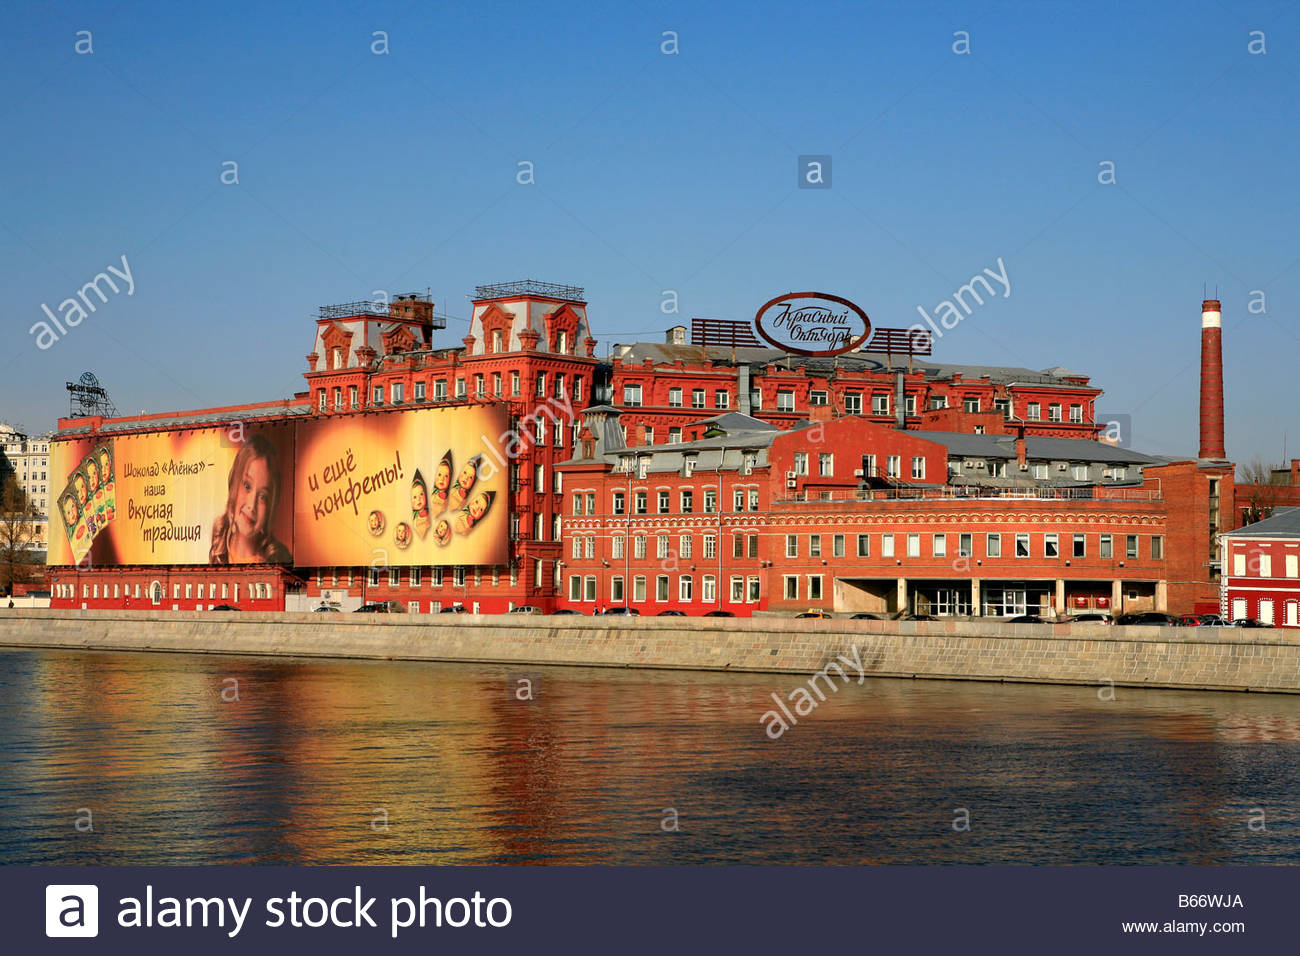 Red October Moscow, The Red October Chocolate Factory building (1851) in Moscow ...